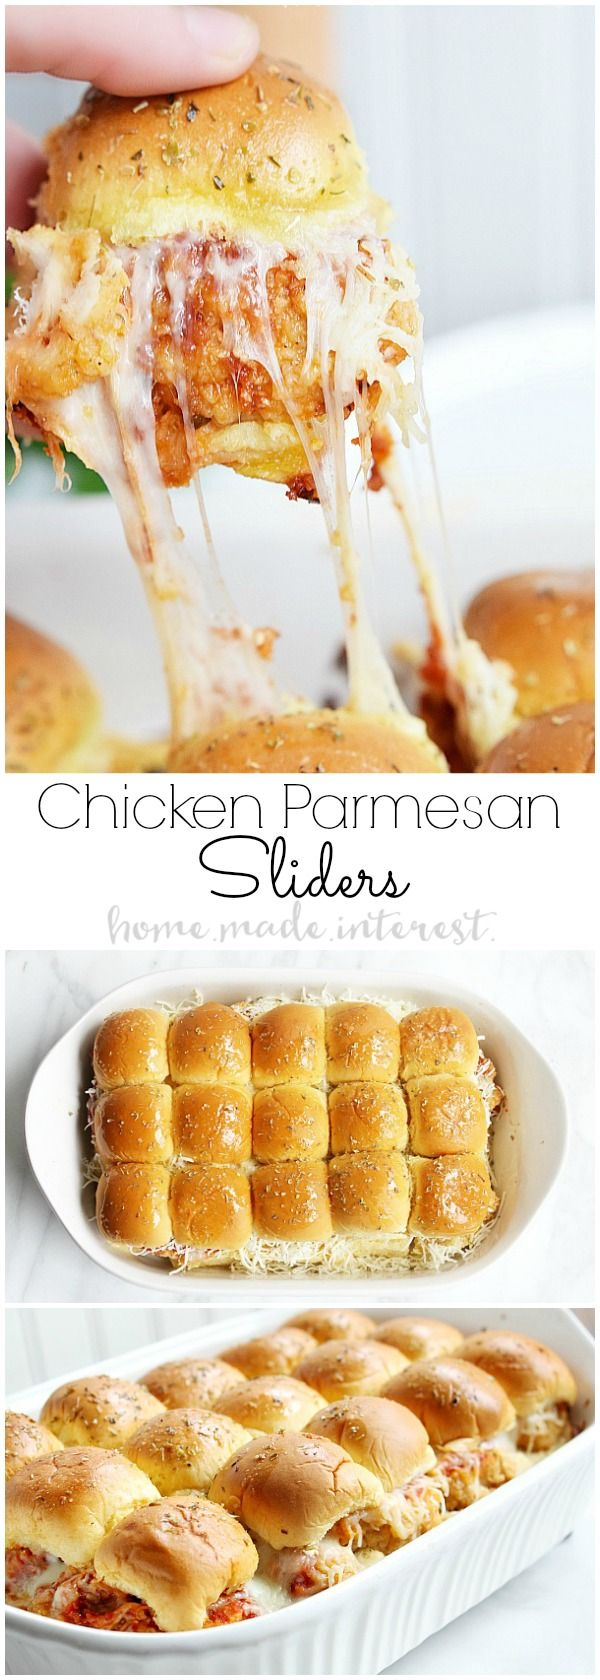 These Chicken Parmesan sliders are an easy recipe that everyone is going to love. Fried chicken tender